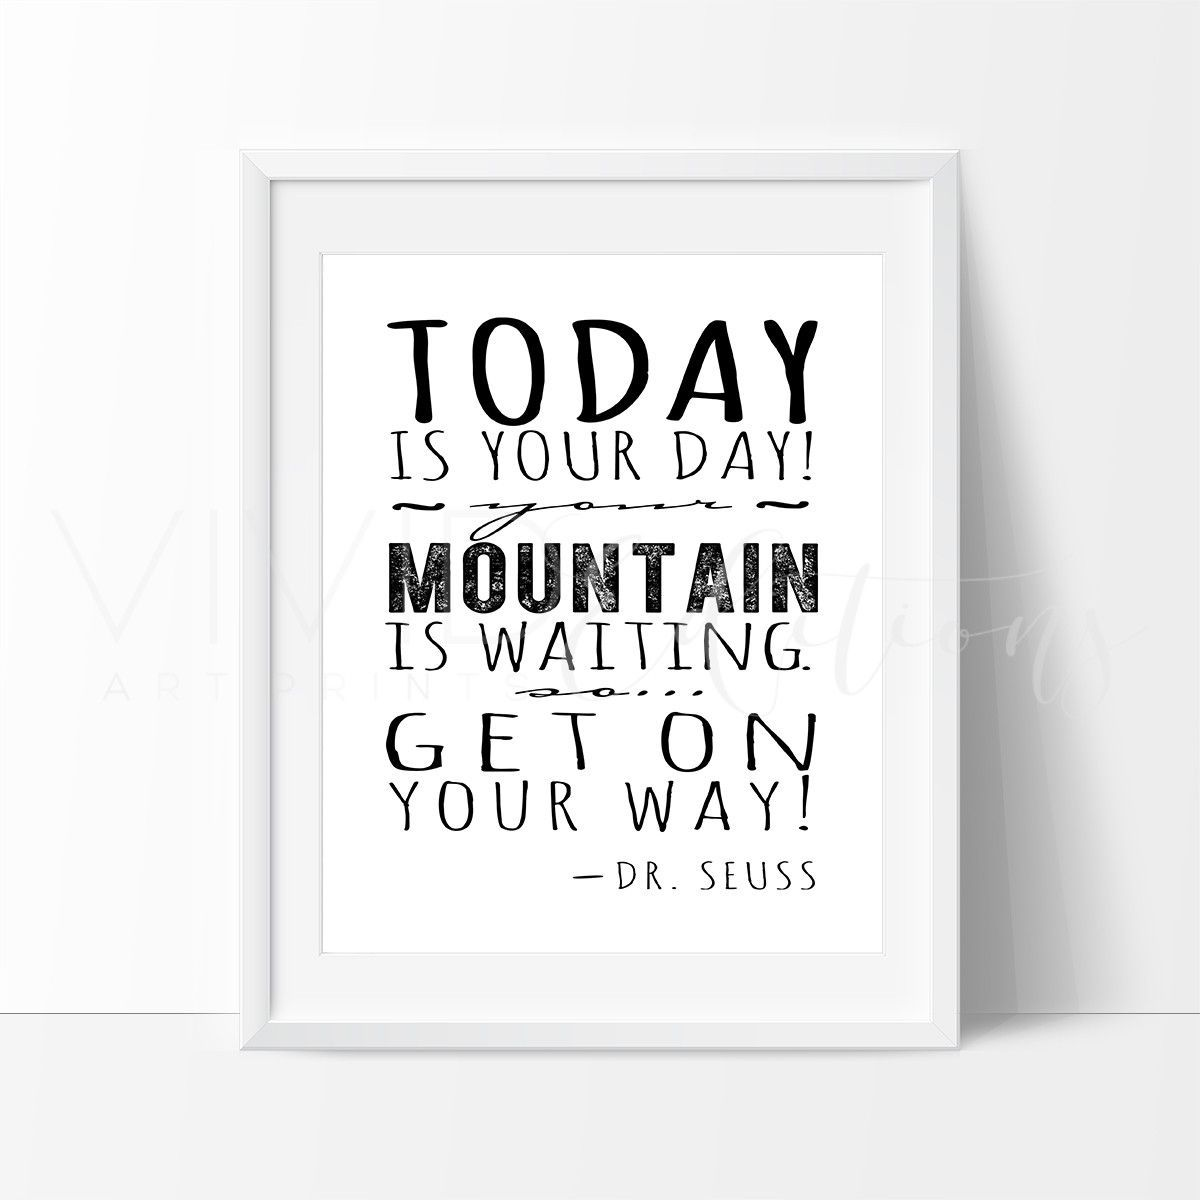 Dr Seuss Mountain Quote: Today Is Your Day! Your Mountain Is Waiting..., Dr. Seuss